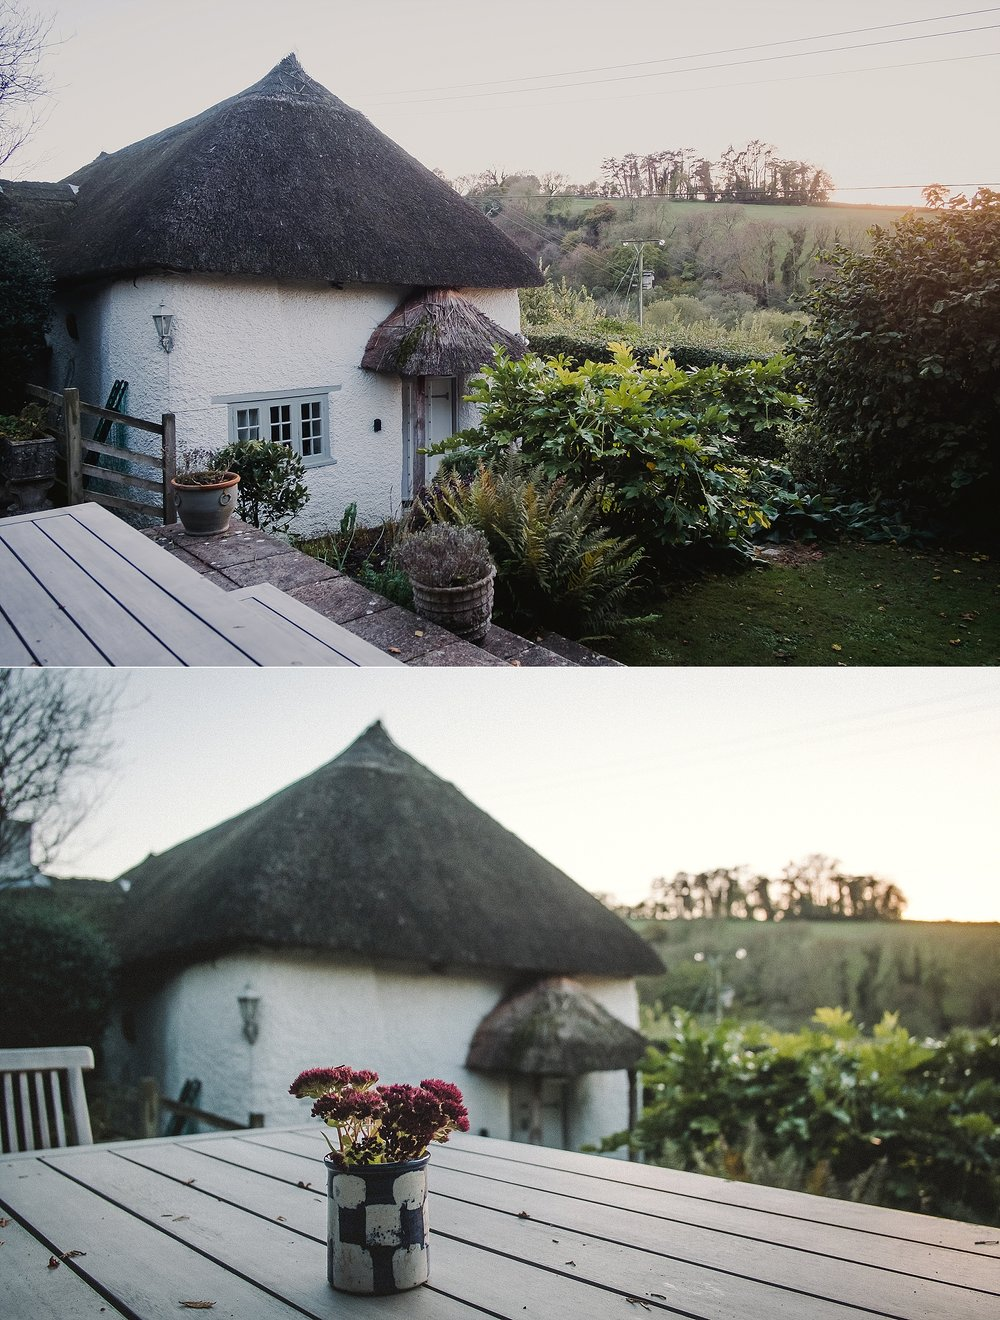 marlborough_cottage_combpyne_devon_2018_0060.jpg